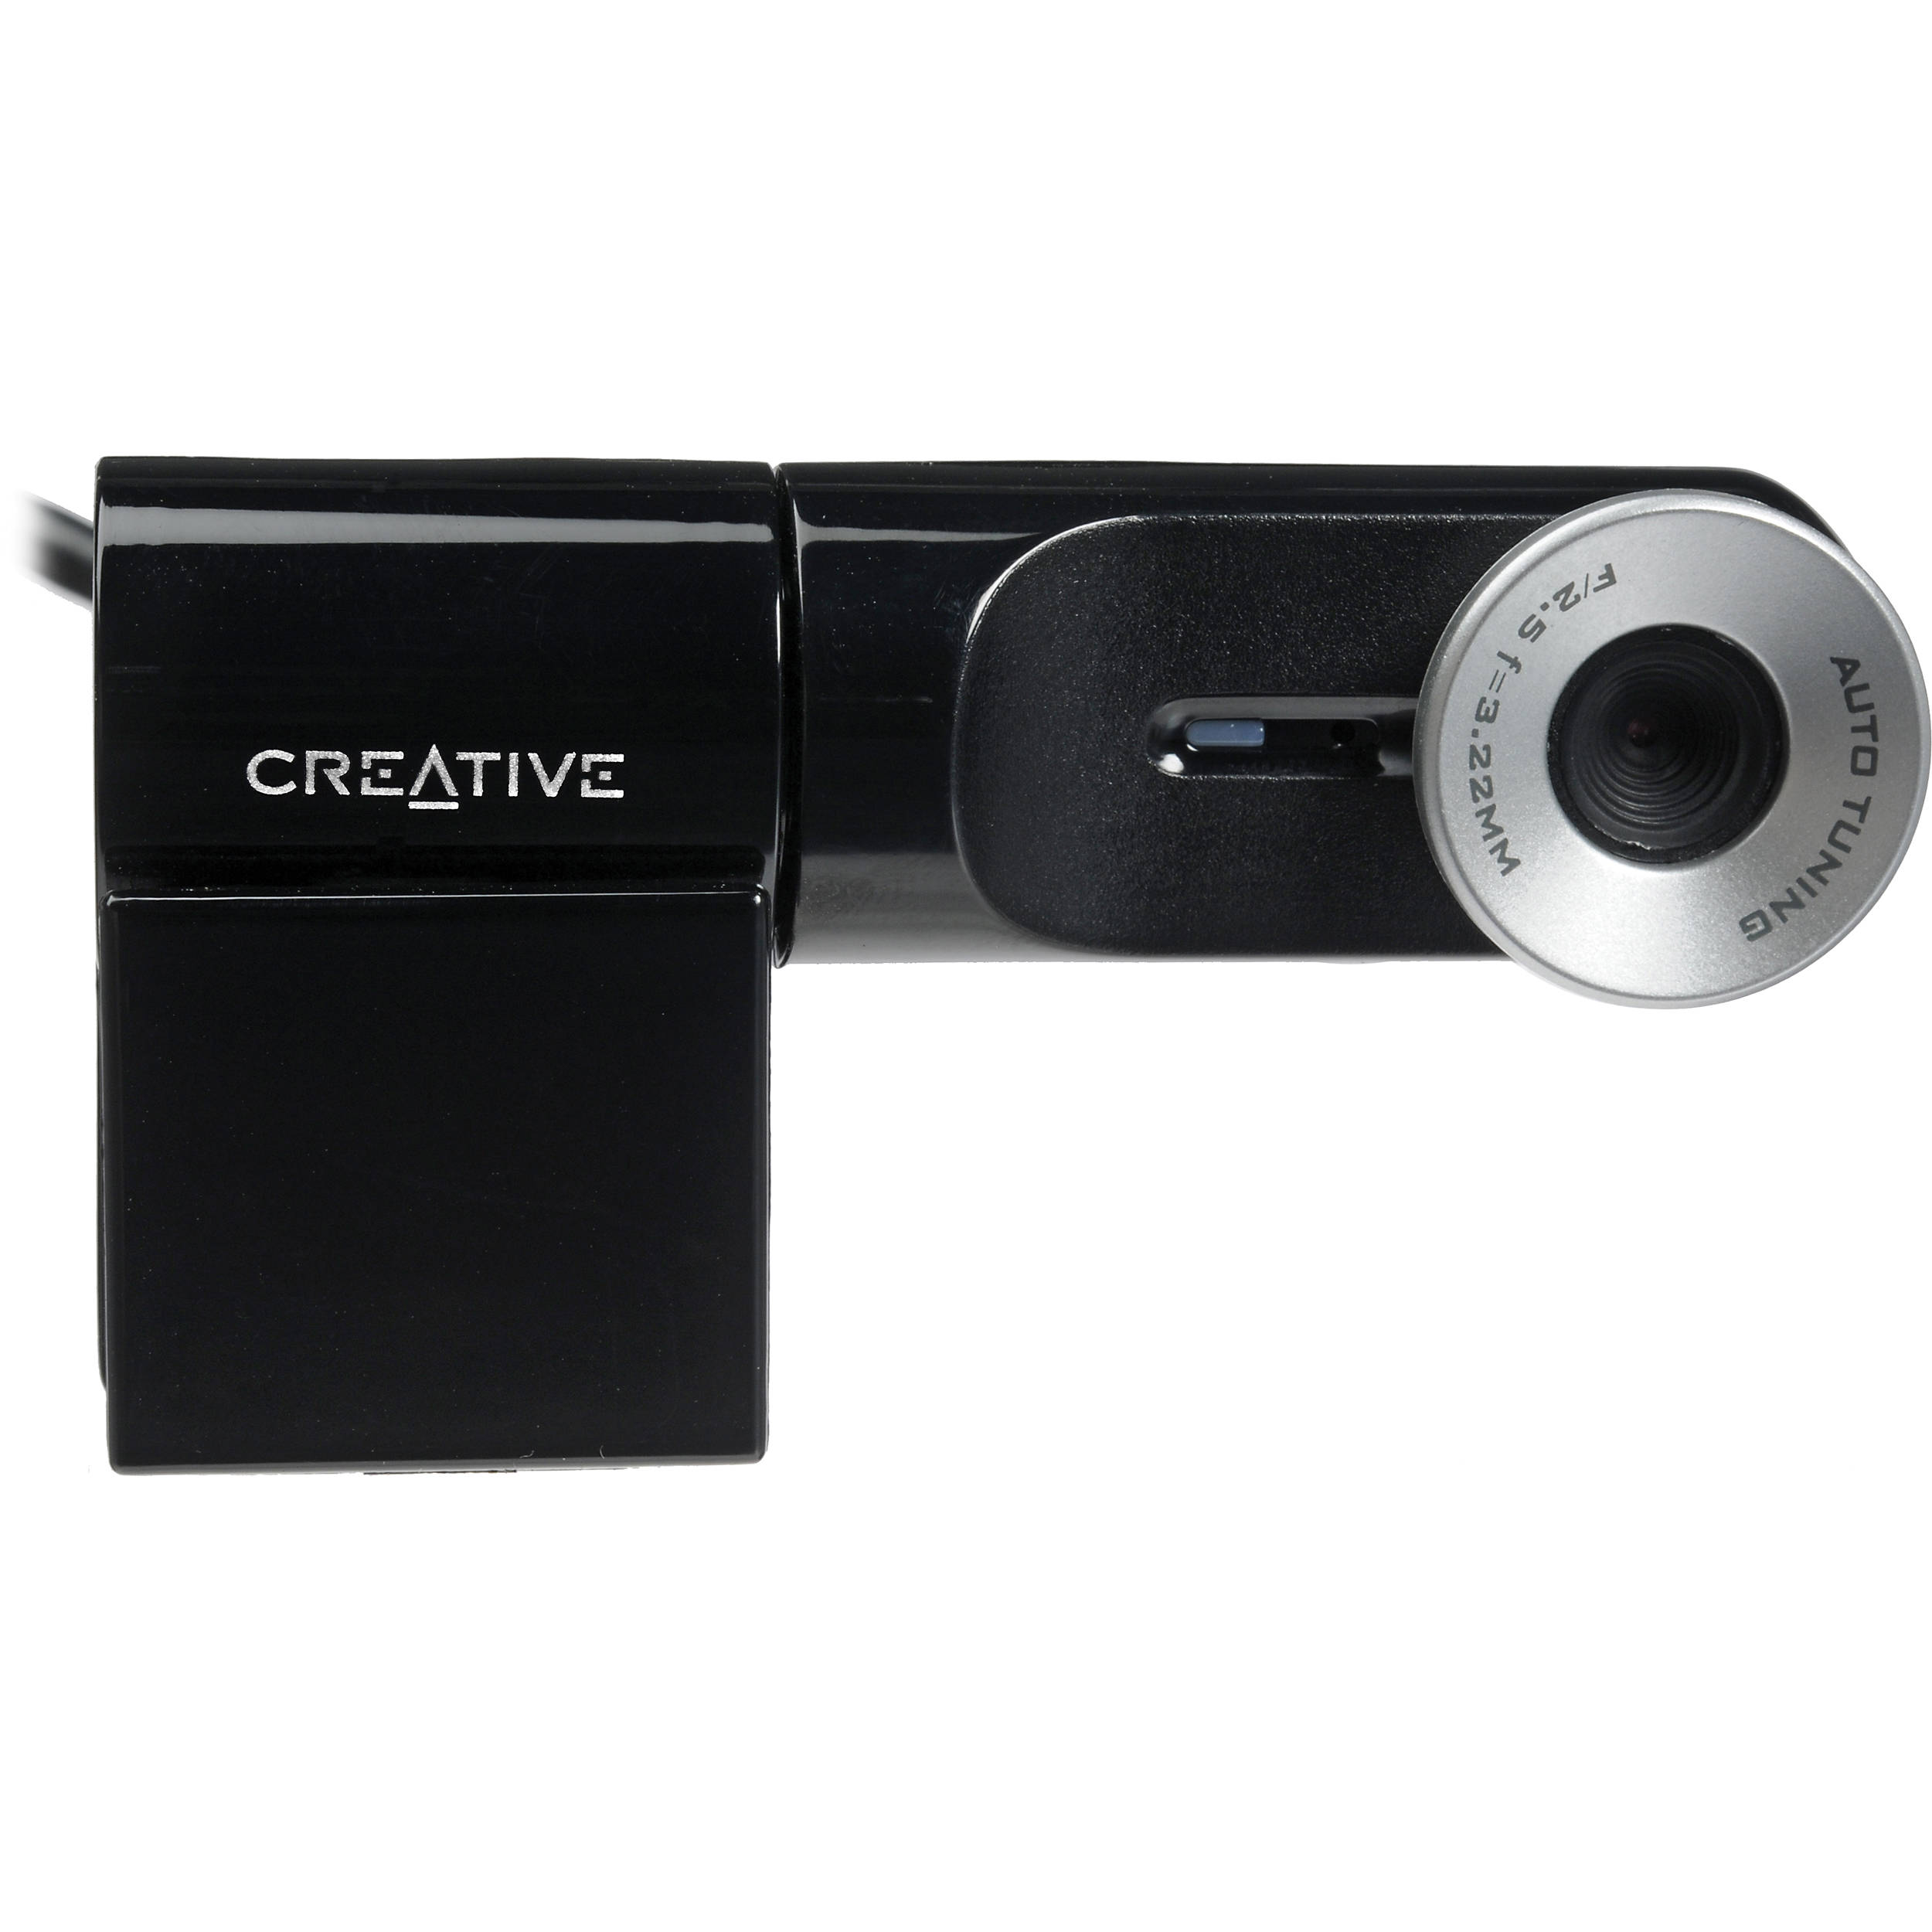 Creative Live! Cam Notebook Pro Drivers for Windows